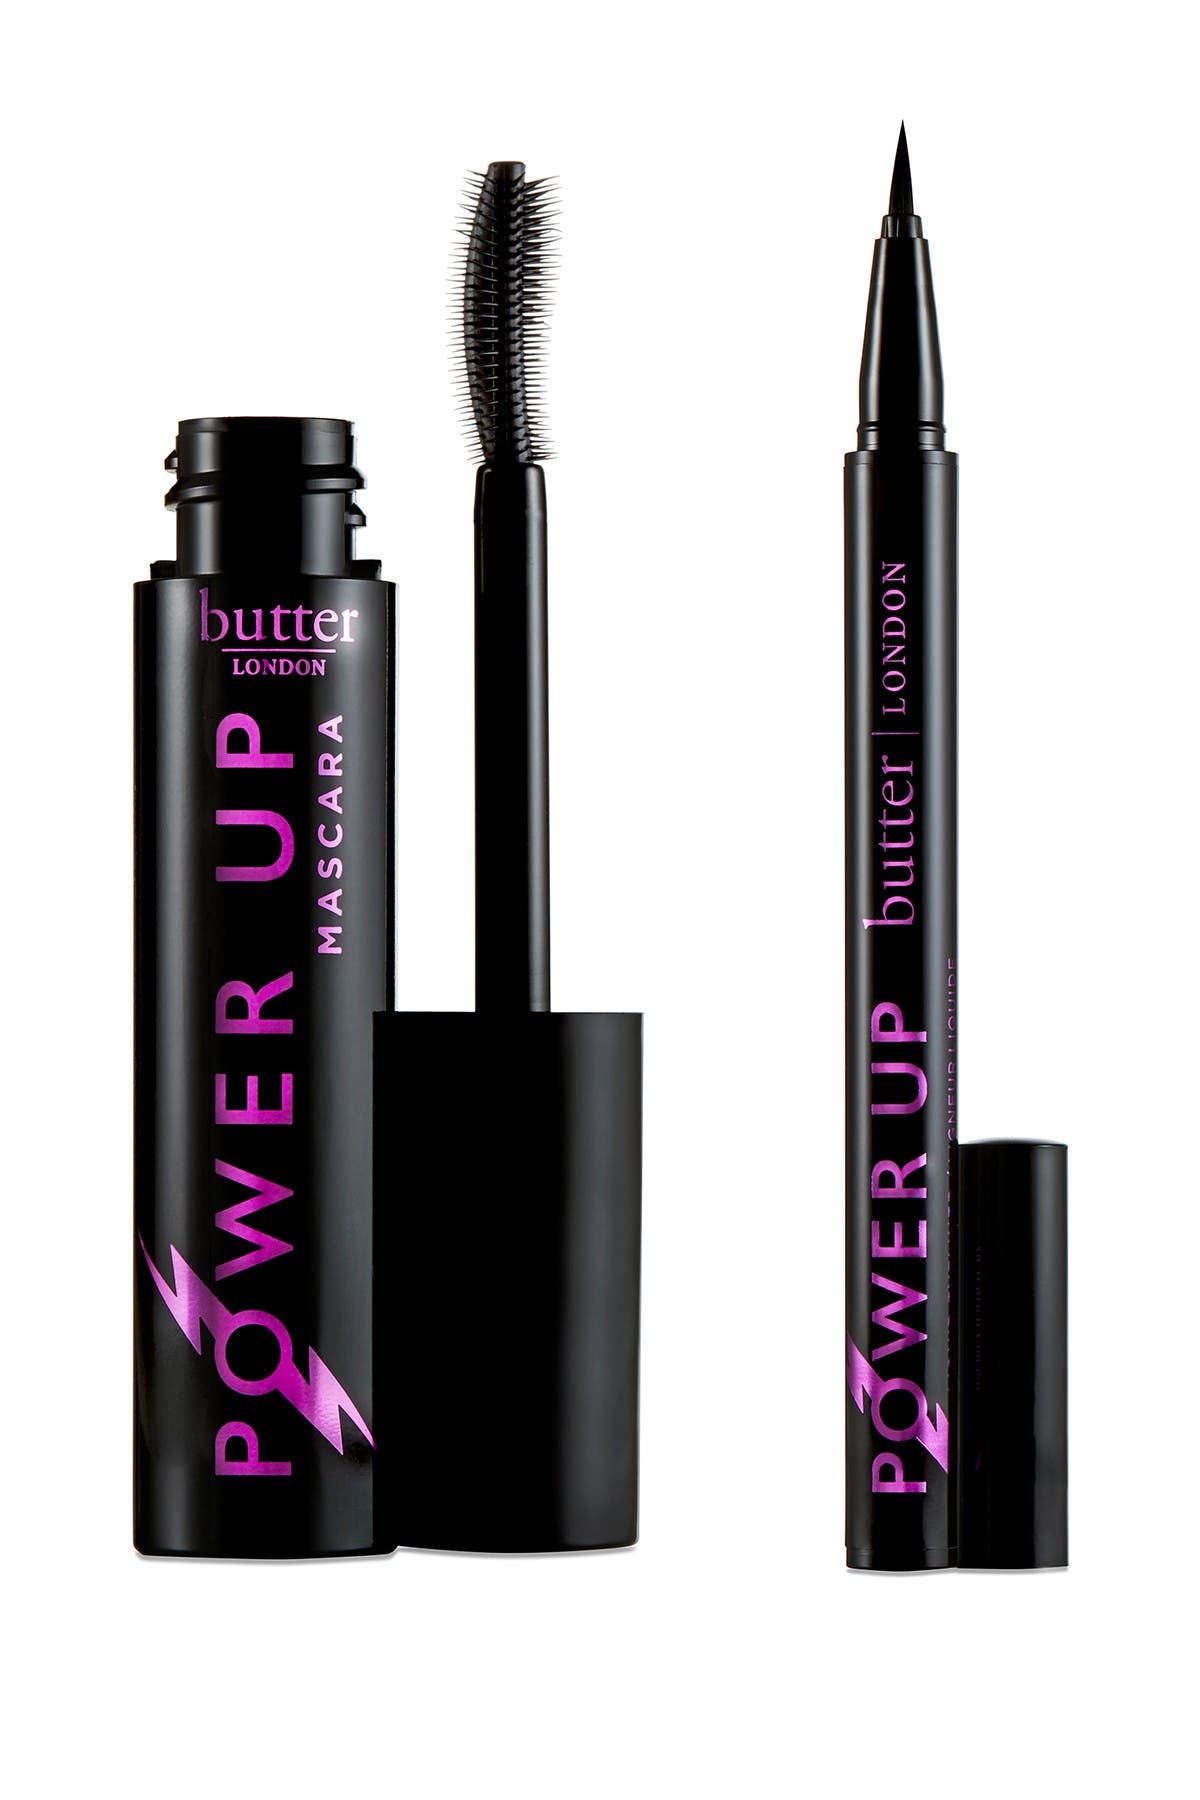 Image of butter LONDON Power Up Mascara and Eyeliner Gift Set